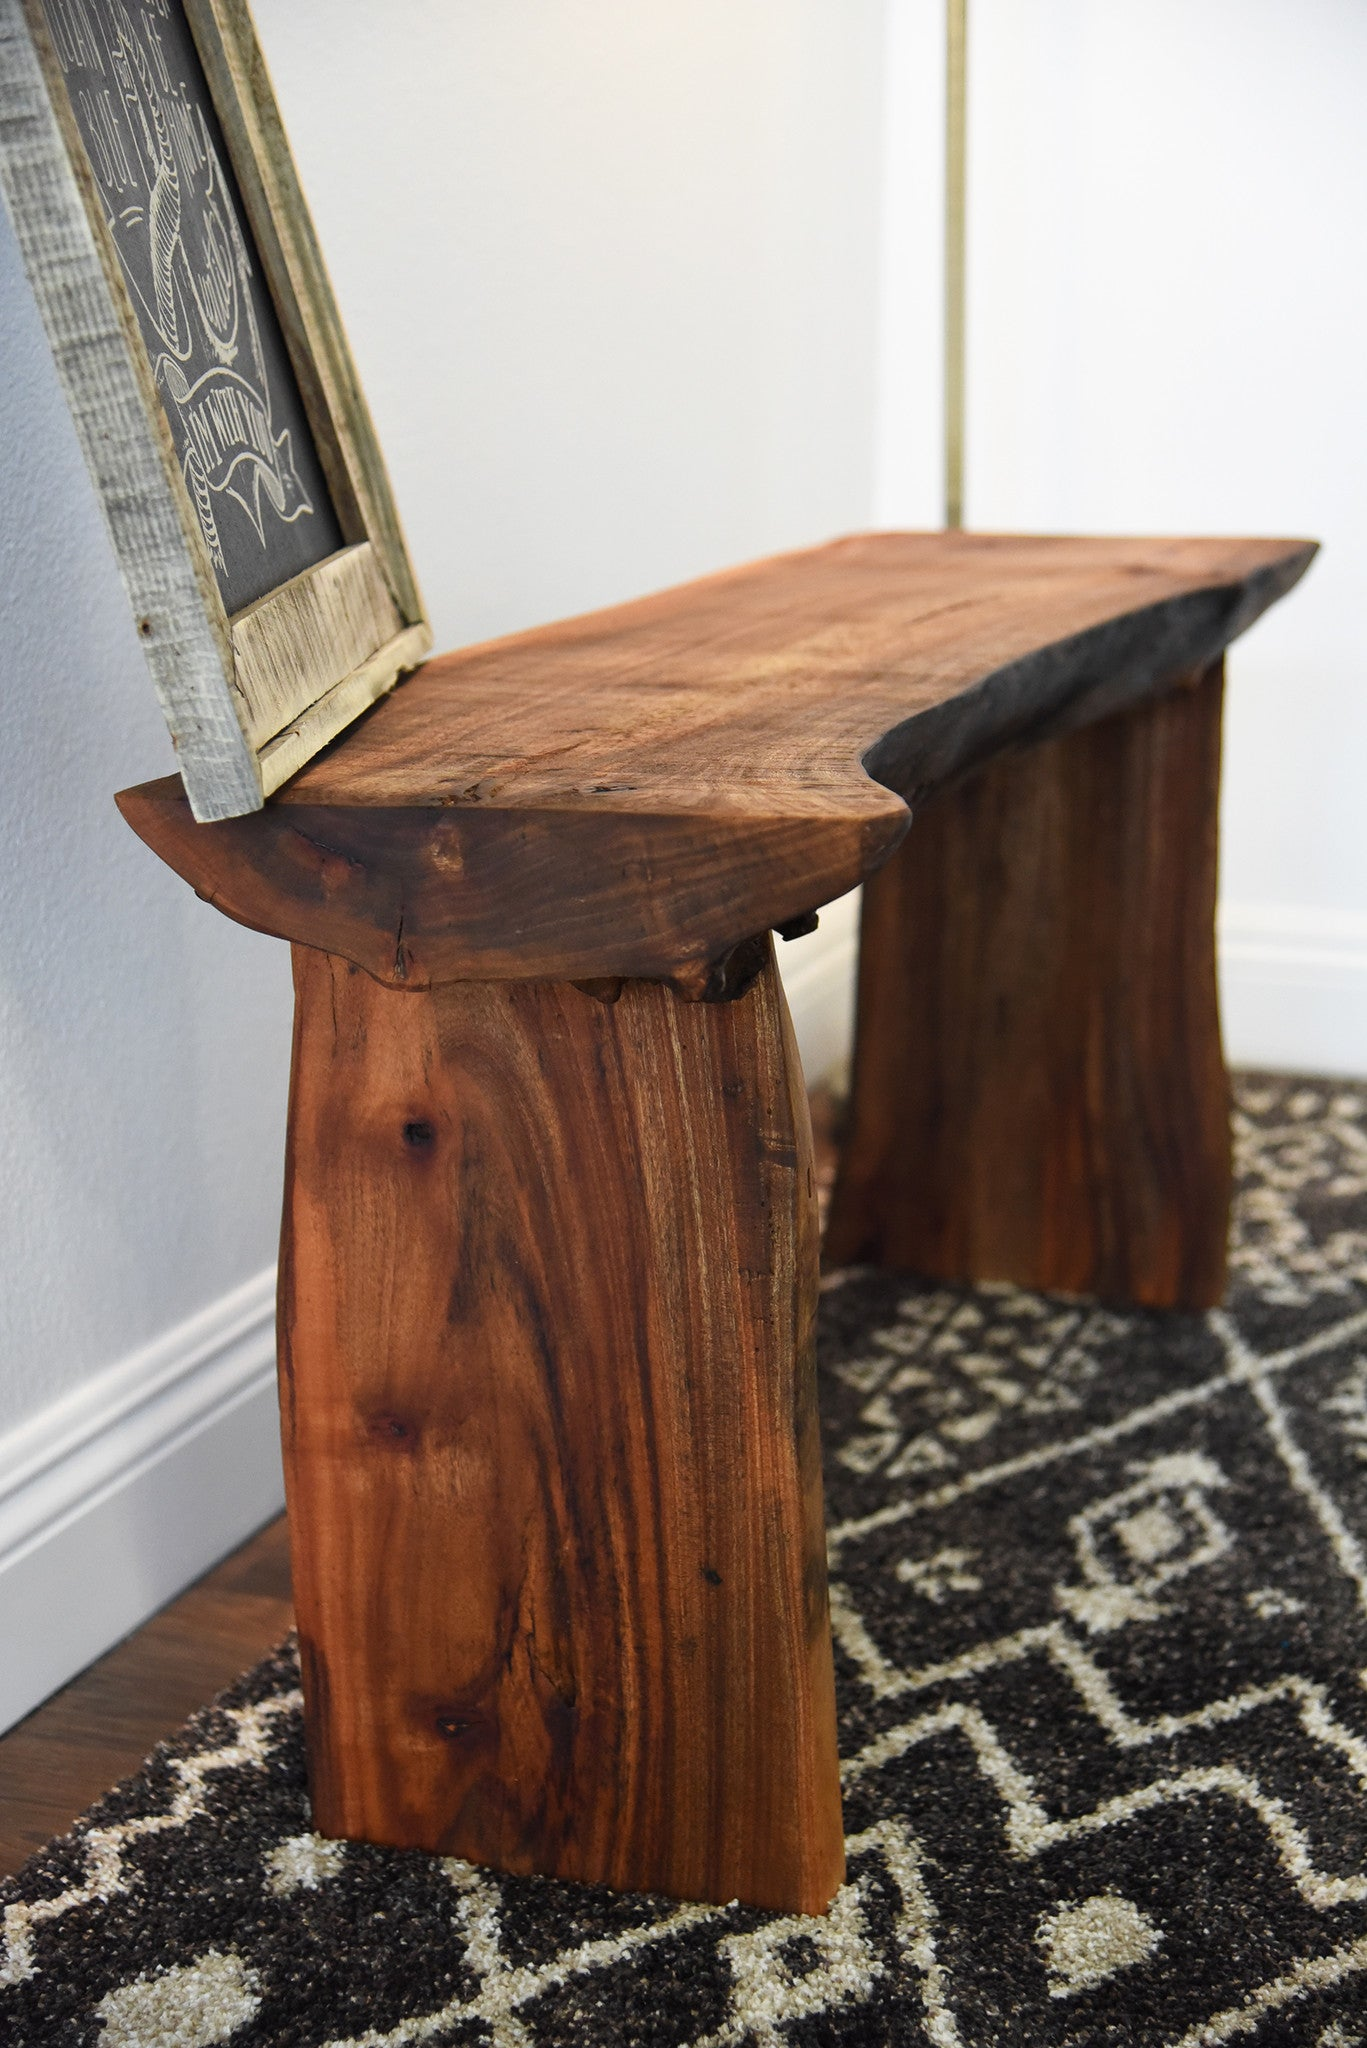 Modern log bench - Rustic Log Bench Live Edge Slab Coffee Table